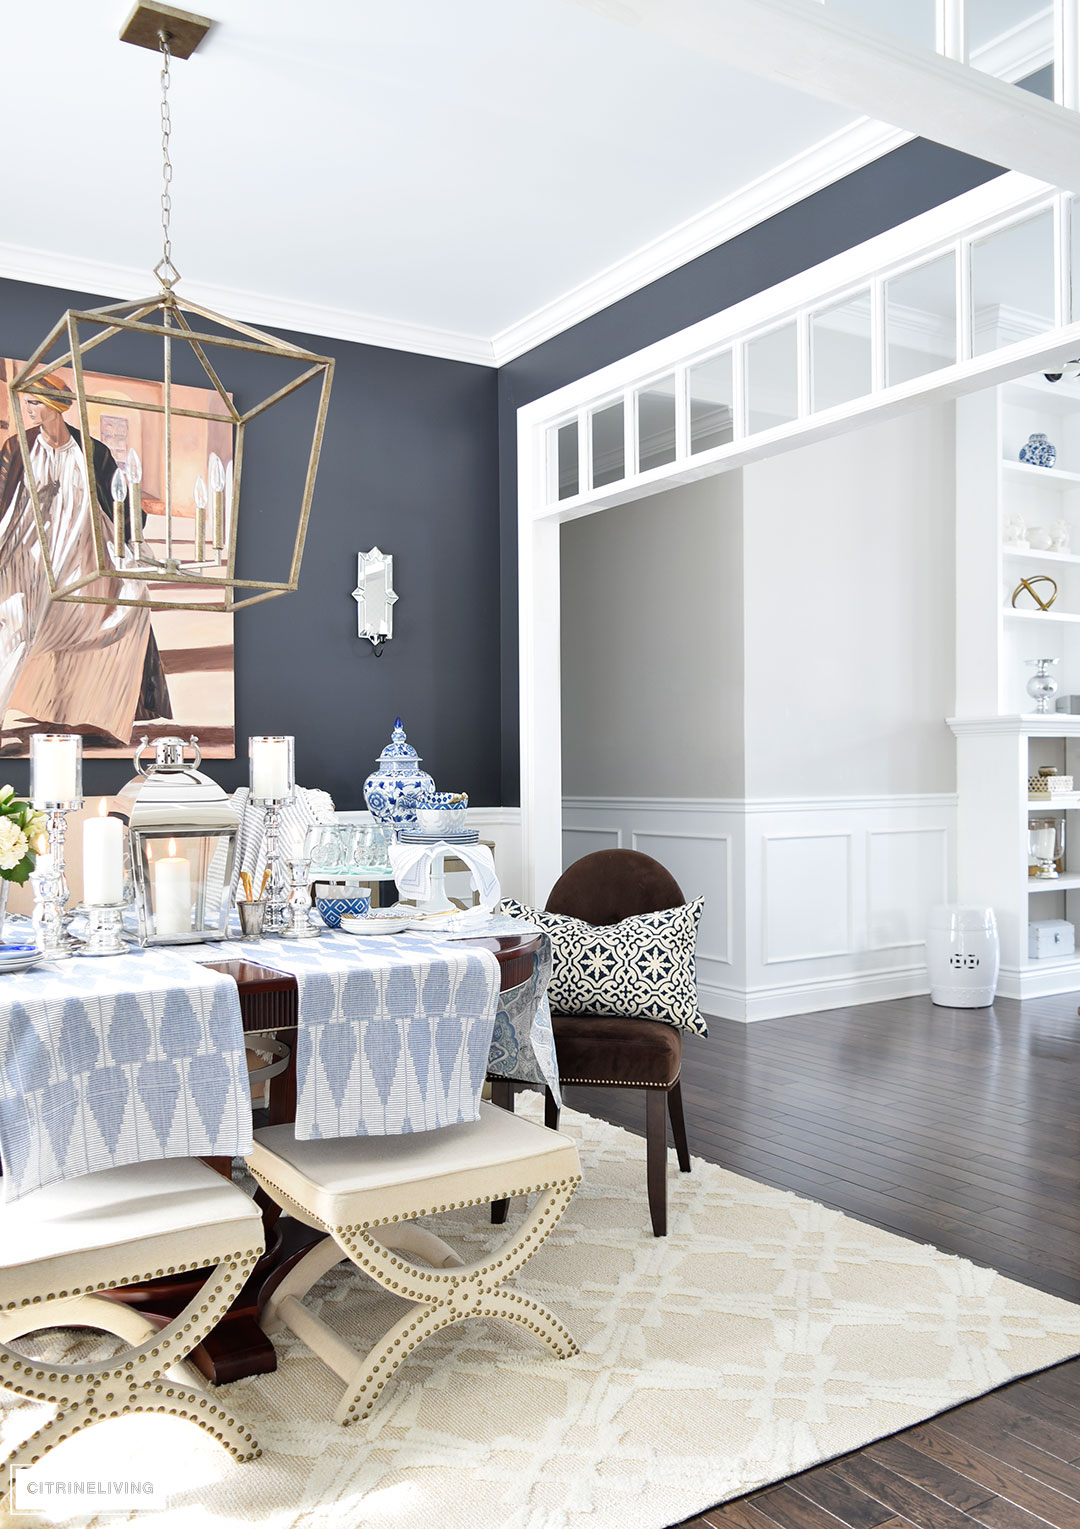 Bring a fresh Spring vibe to your decor with a mix of blue and white pattern and texture.